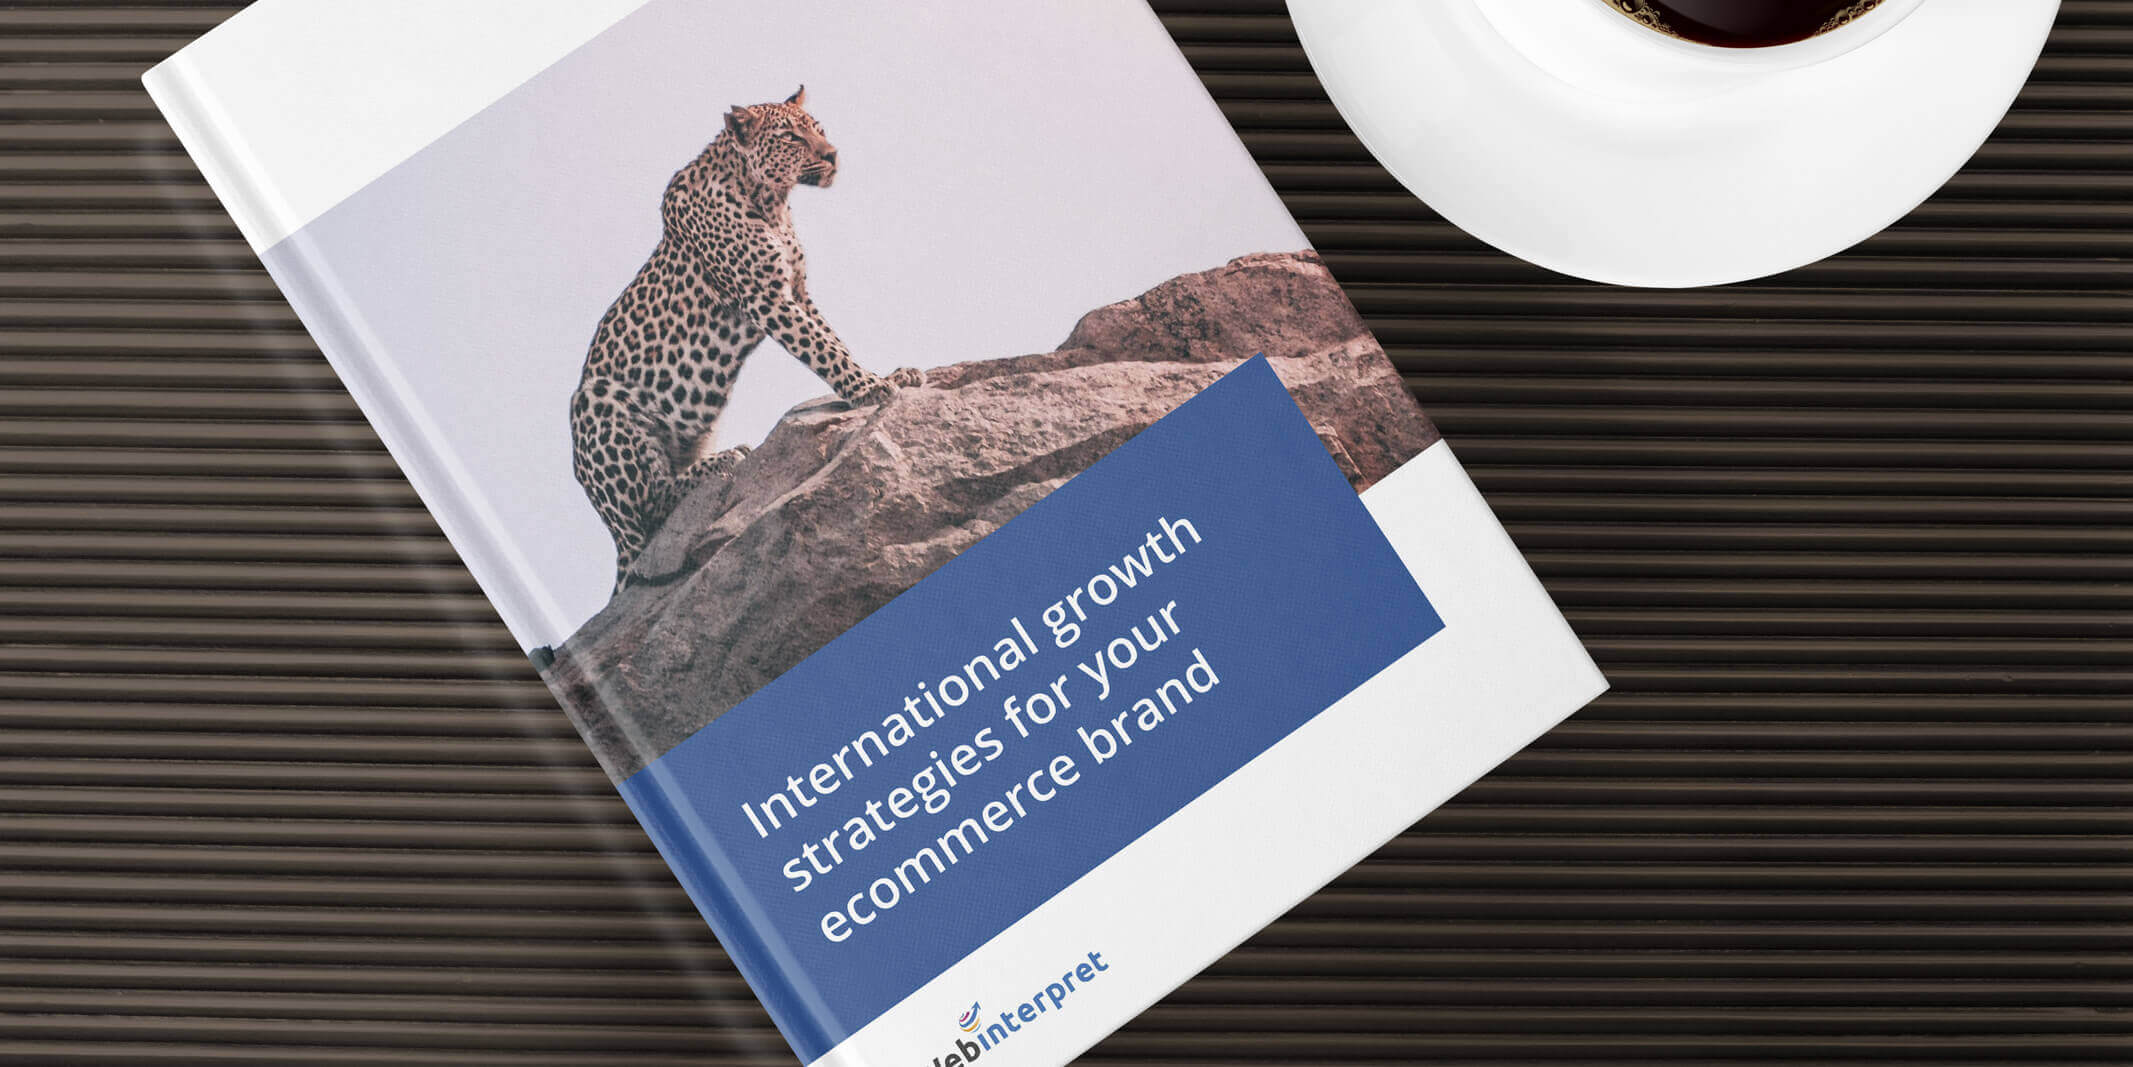 International growth strategies ecommerce guide against a black background